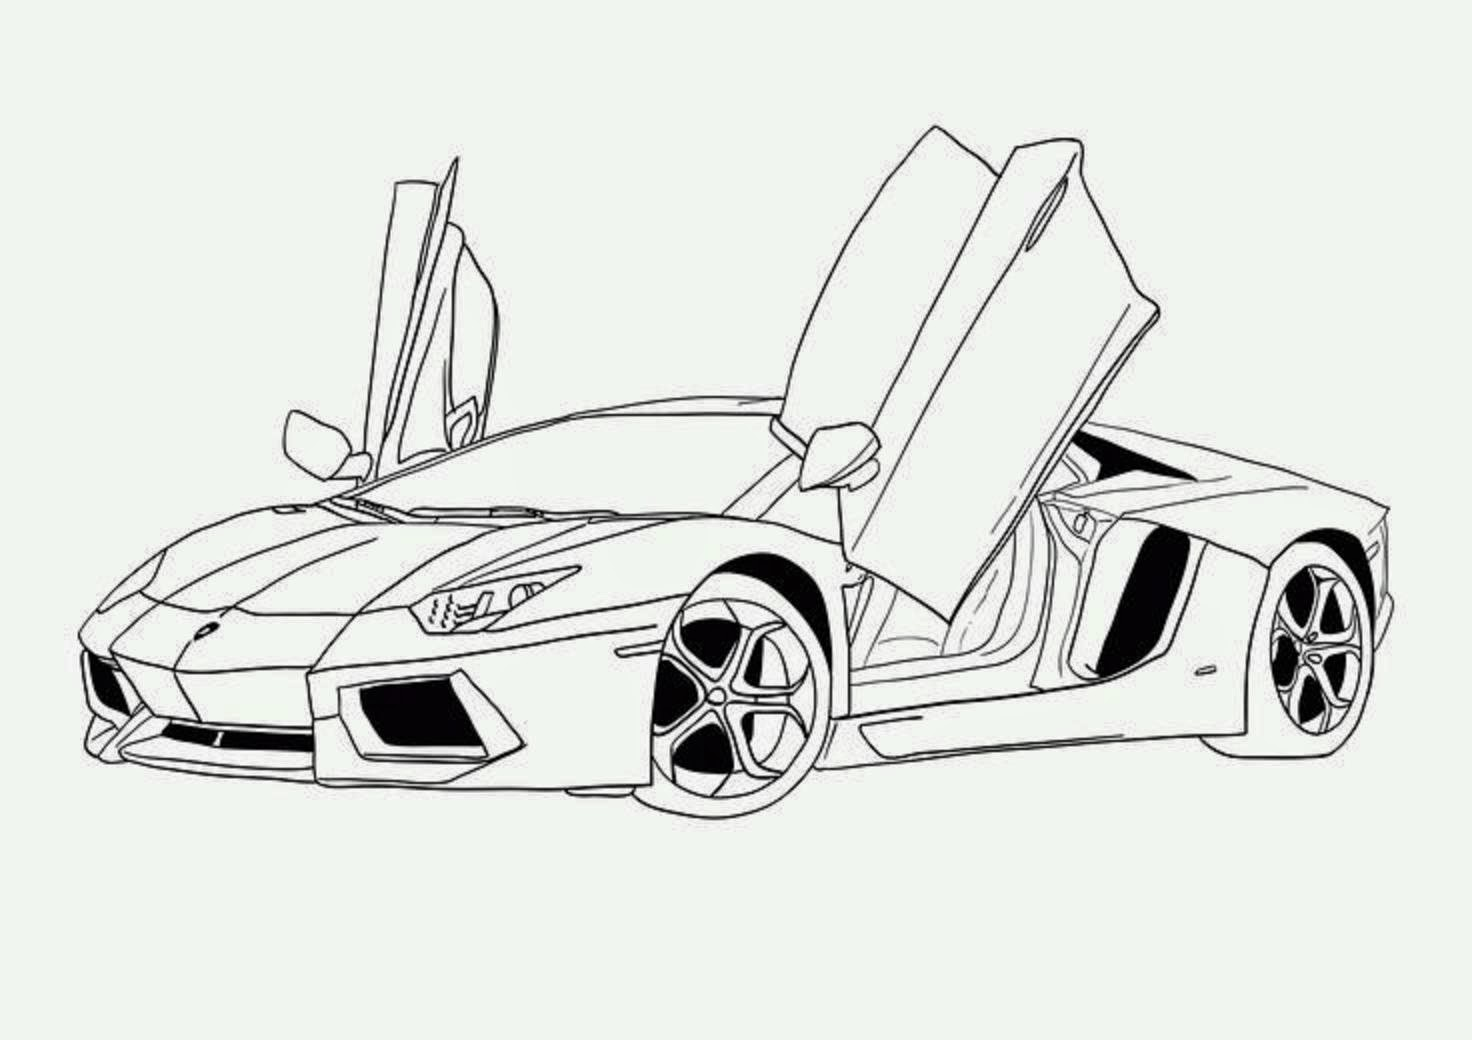 Colour a car - Car Coloring Drawing Free Wallpaper